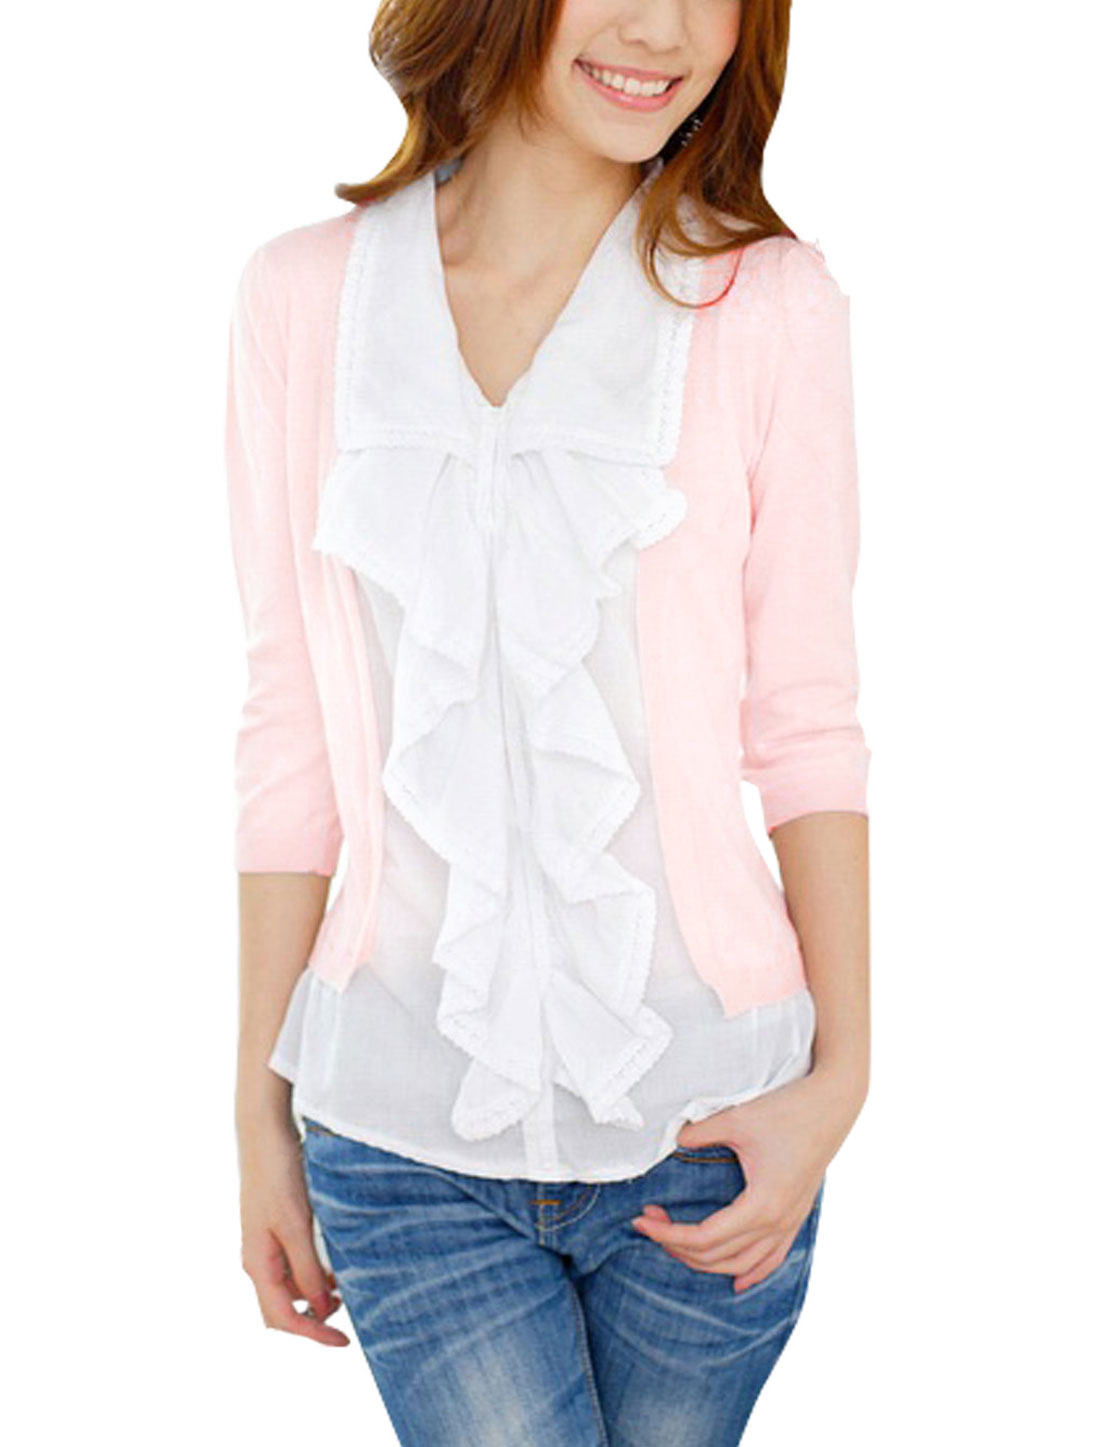 Ladies Pink White 3/4 Sleeve Ruffle Detail Casual Blouse XL